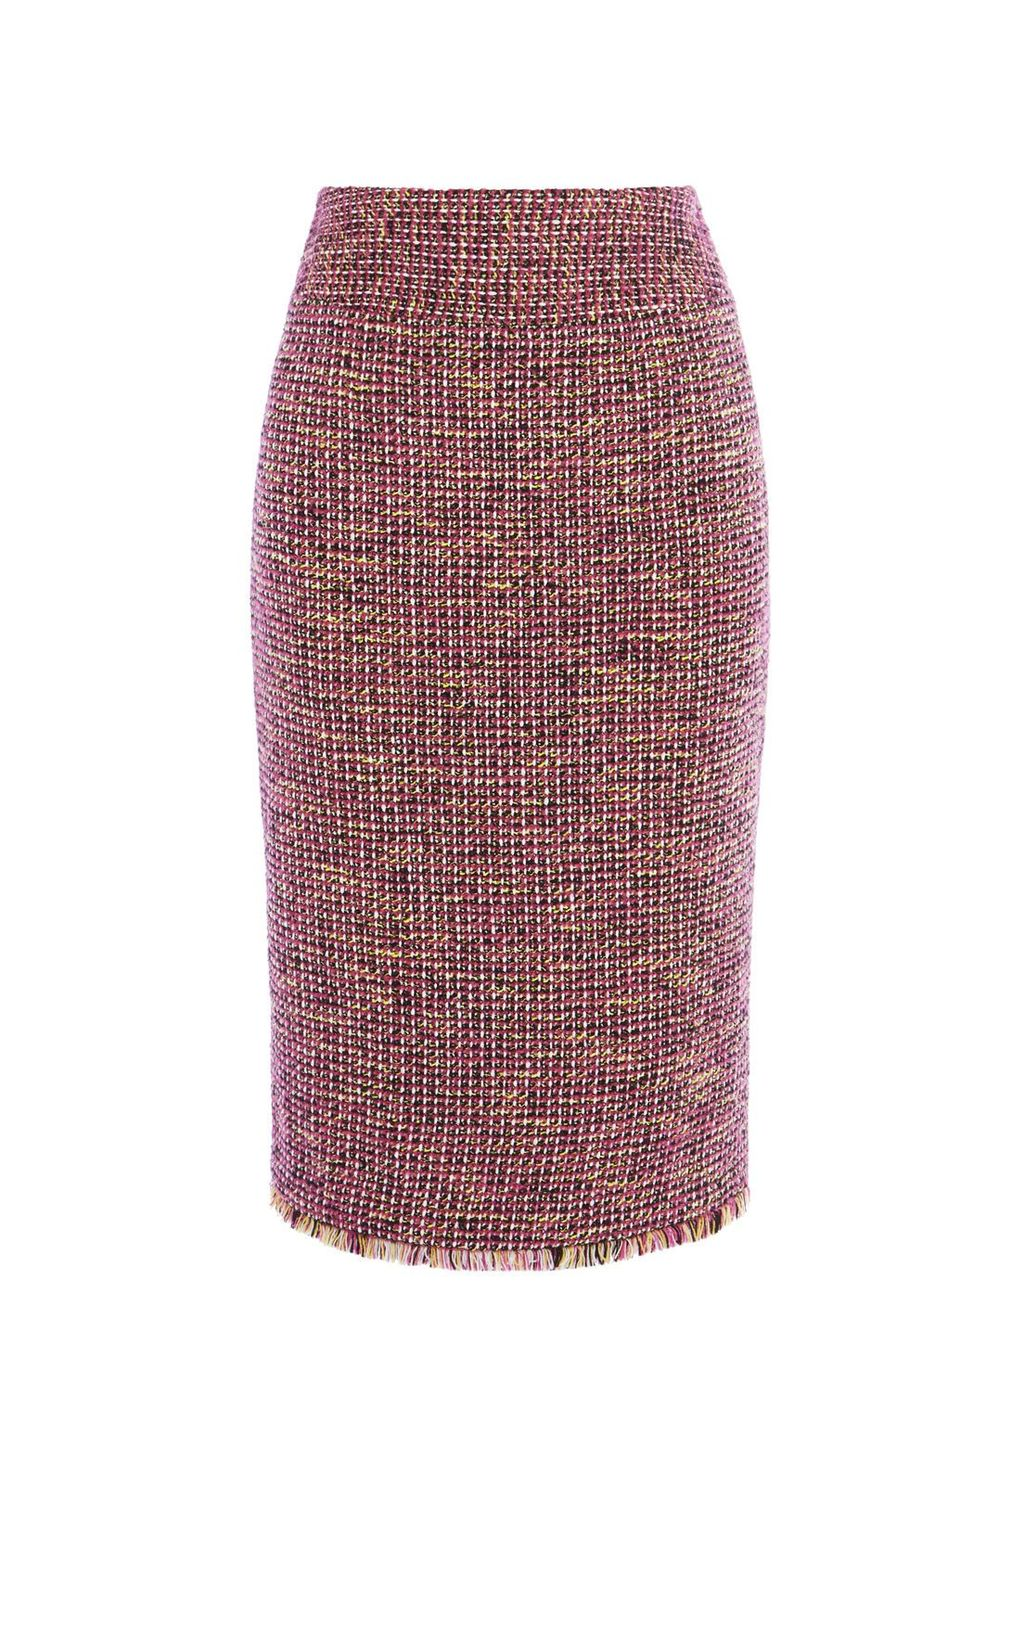 Fringed Tweed Skirt, Multi Coloured - length: below the knee; style: pencil; fit: tailored/fitted; pattern: herringbone/tweed; waist: mid/regular rise; predominant colour: hot pink; secondary colour: yellow; occasions: work, creative work; fibres: acrylic - mix; pattern type: fabric; texture group: tweed - light/midweight; pattern size: standard (bottom); multicoloured: multicoloured; season: a/w 2016; wardrobe: highlight